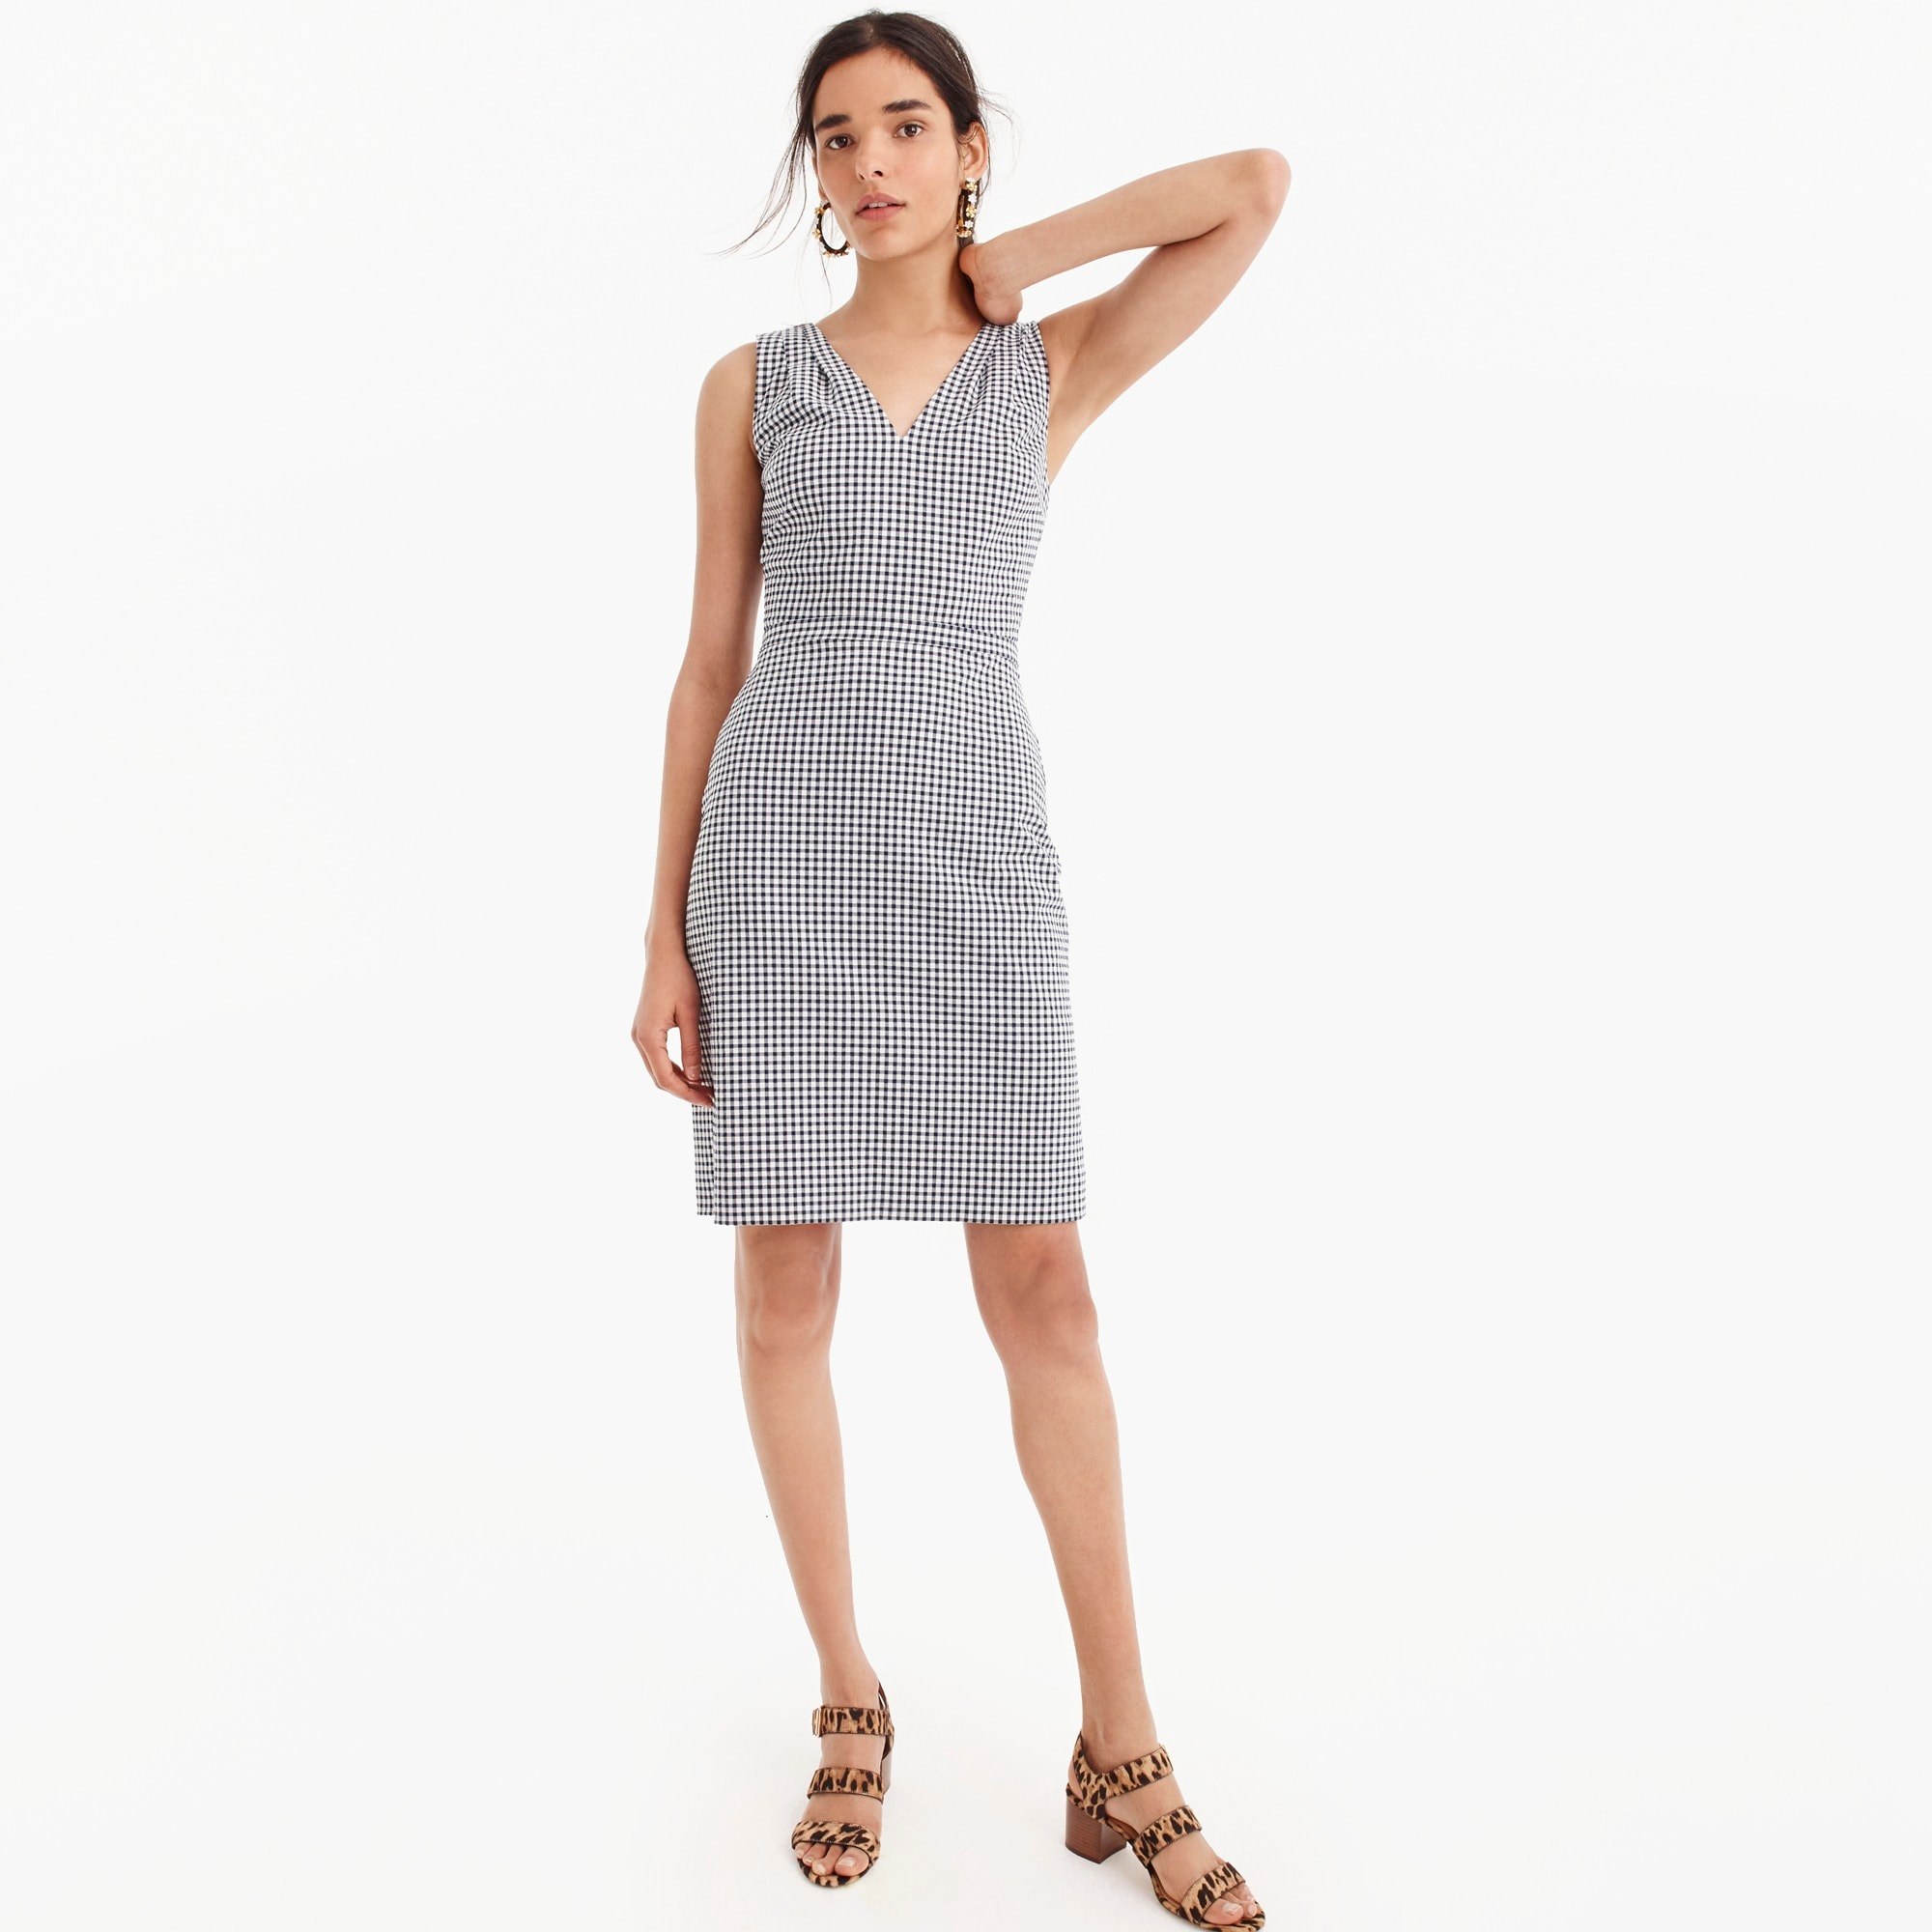 Image 1 for V-neck seersucker dress in gingham